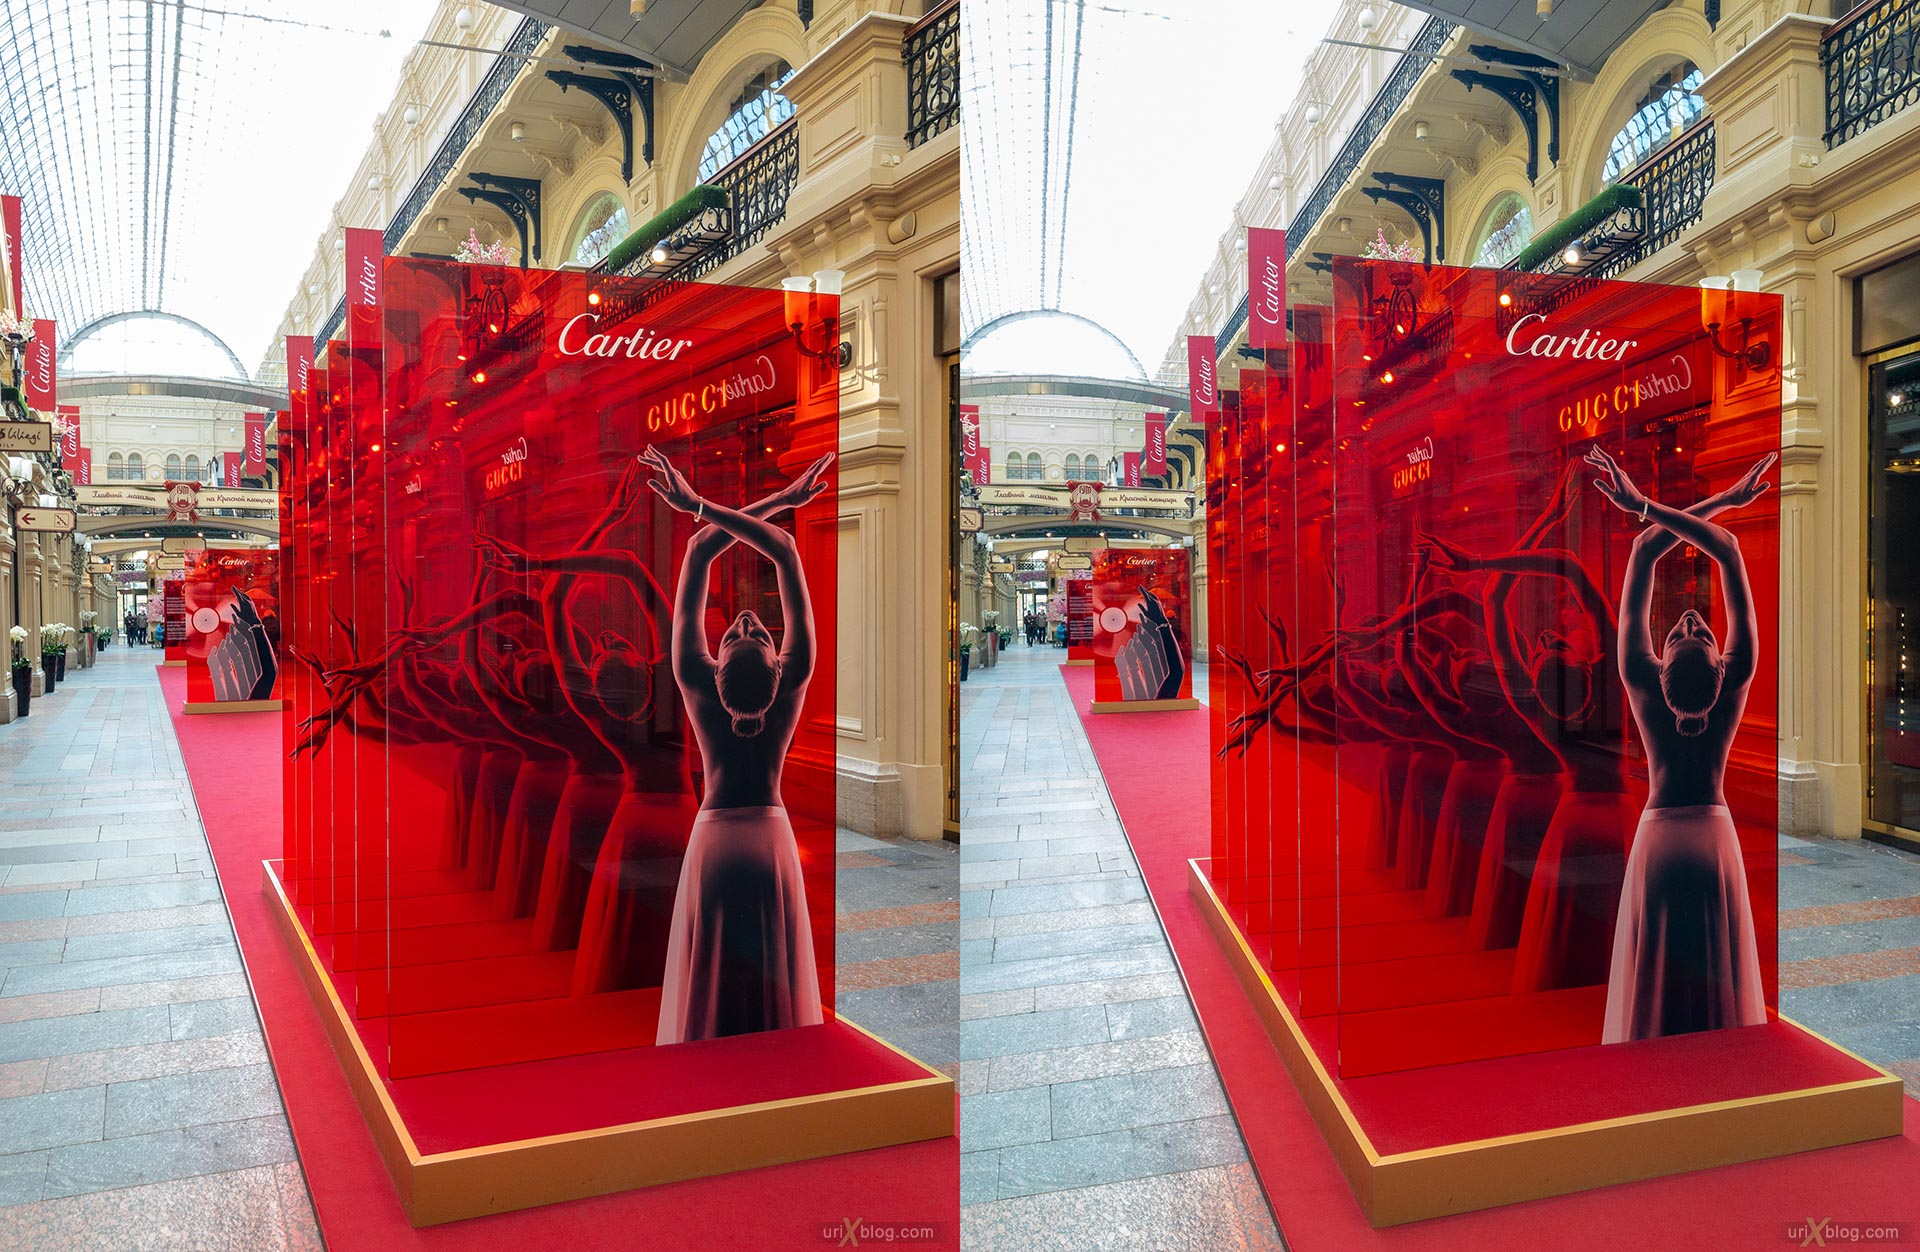 Cartier, GUM store, Moscow, Russia, 3D, stereo pair, cross-eyed, crossview, cross view stereo pair, stereoscopic